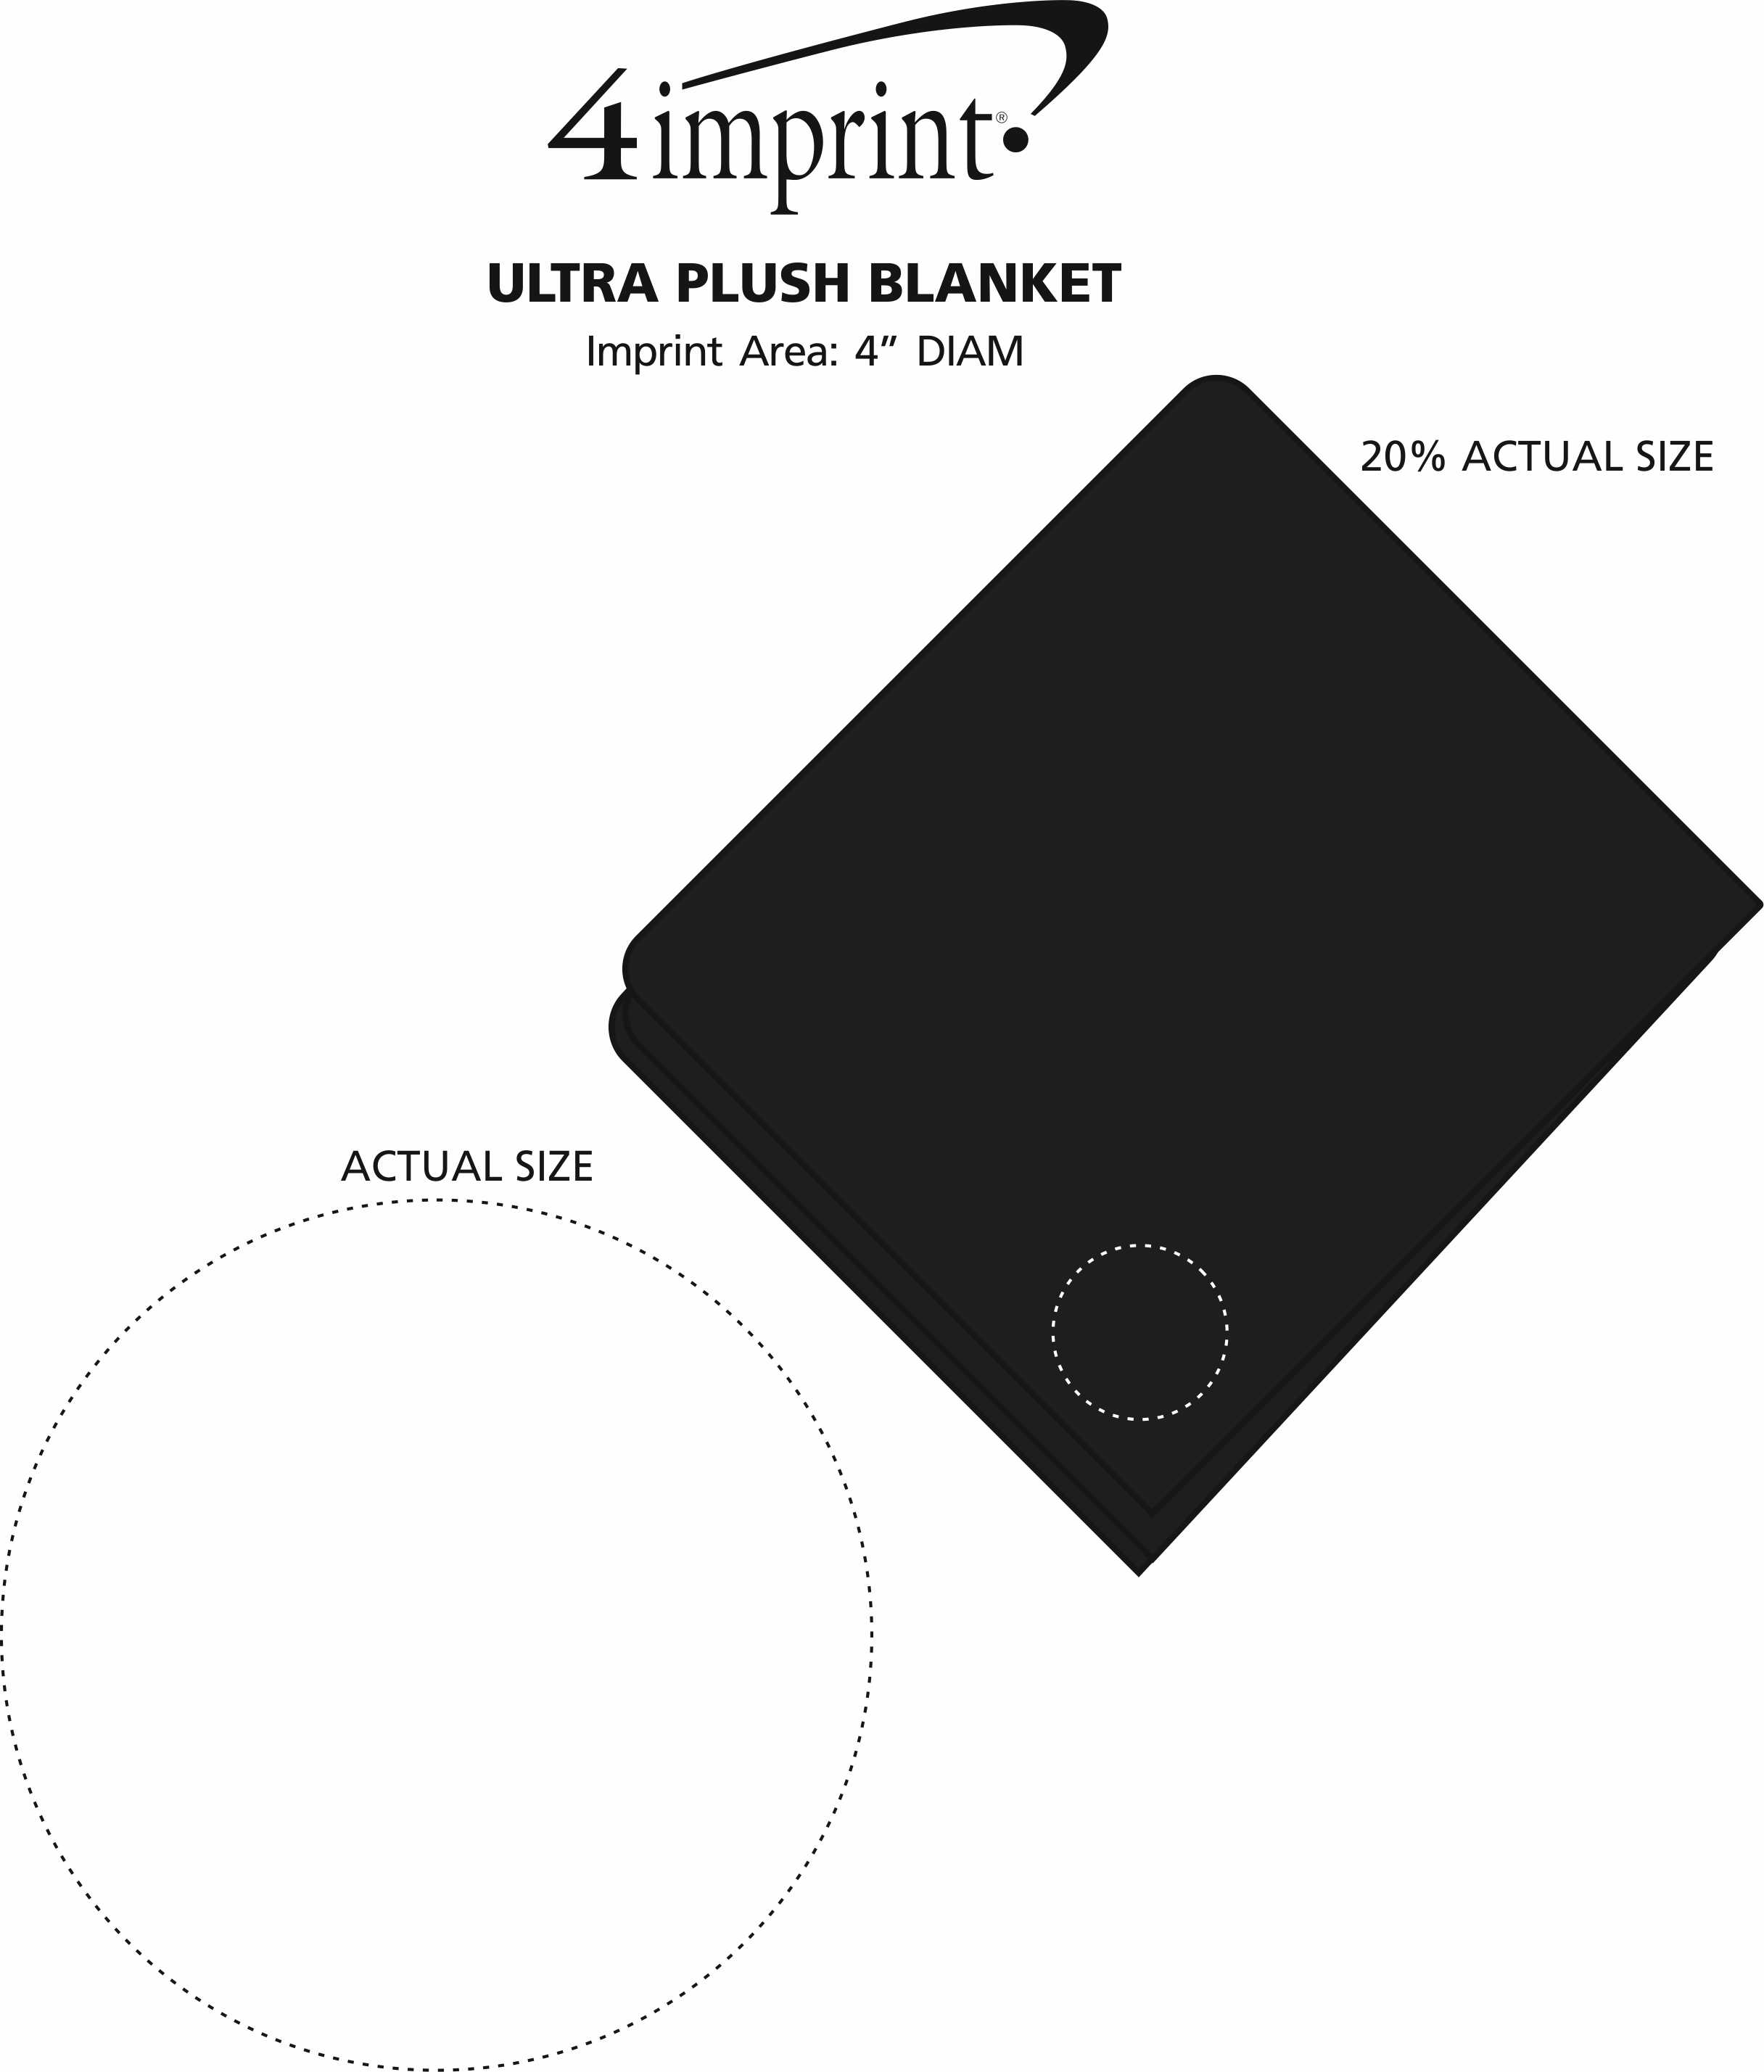 Imprint Area of Ultra Plush Blanket